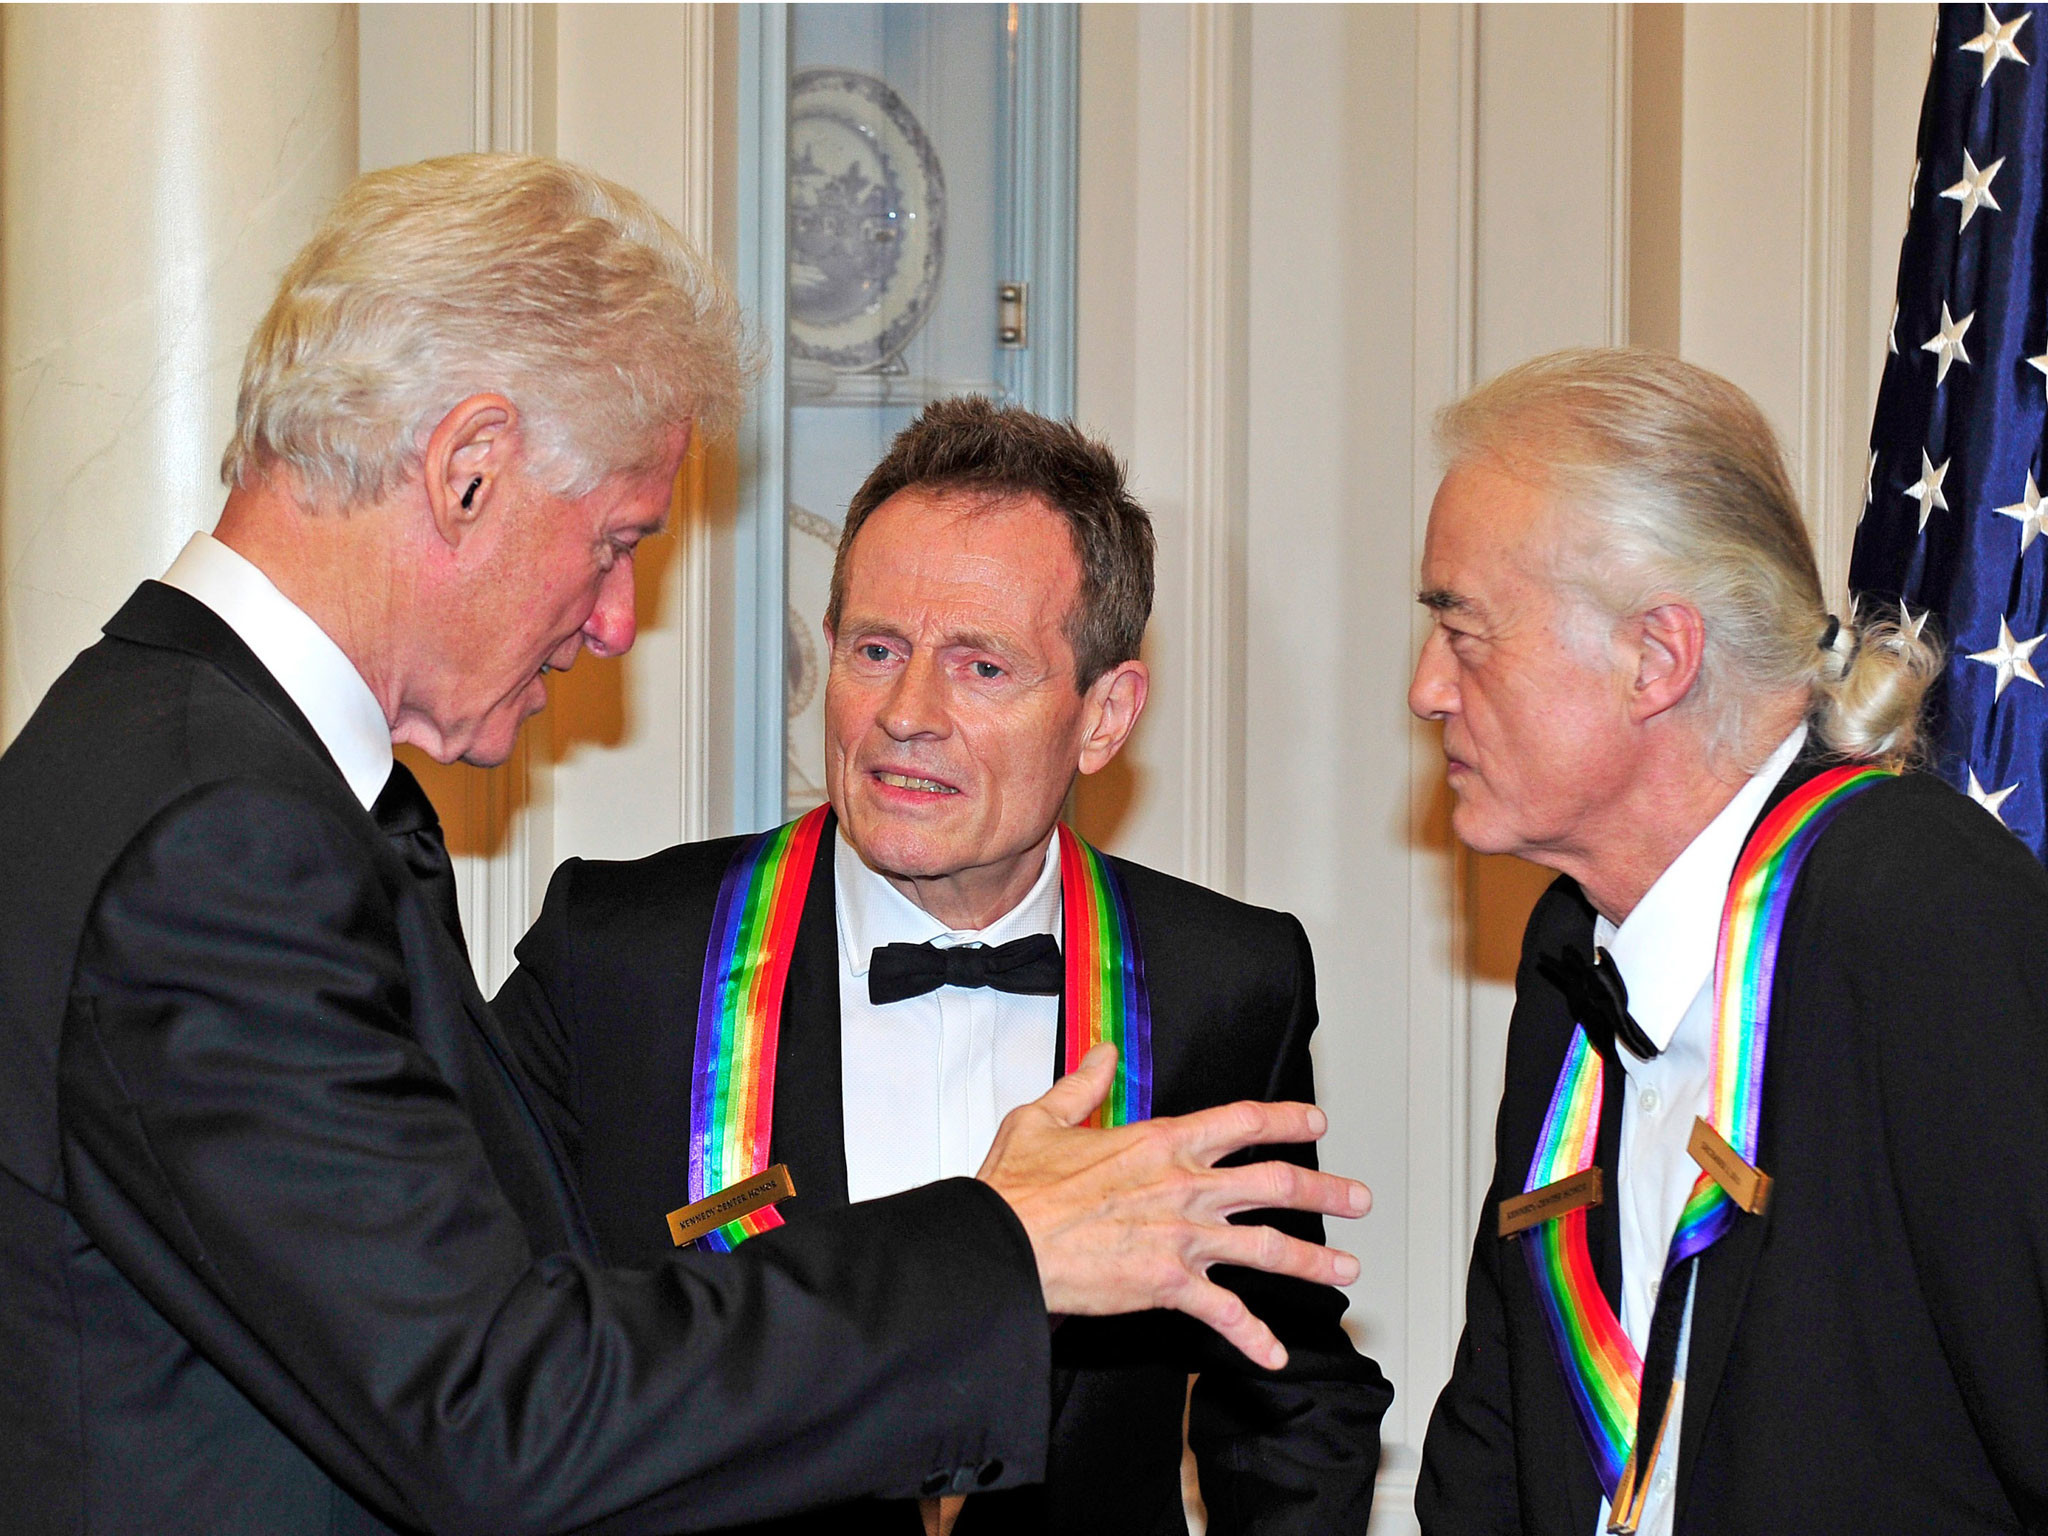 The peace deal even Bill Clinton couldn't broker – a Led Zeppelin reunion |  The Independent